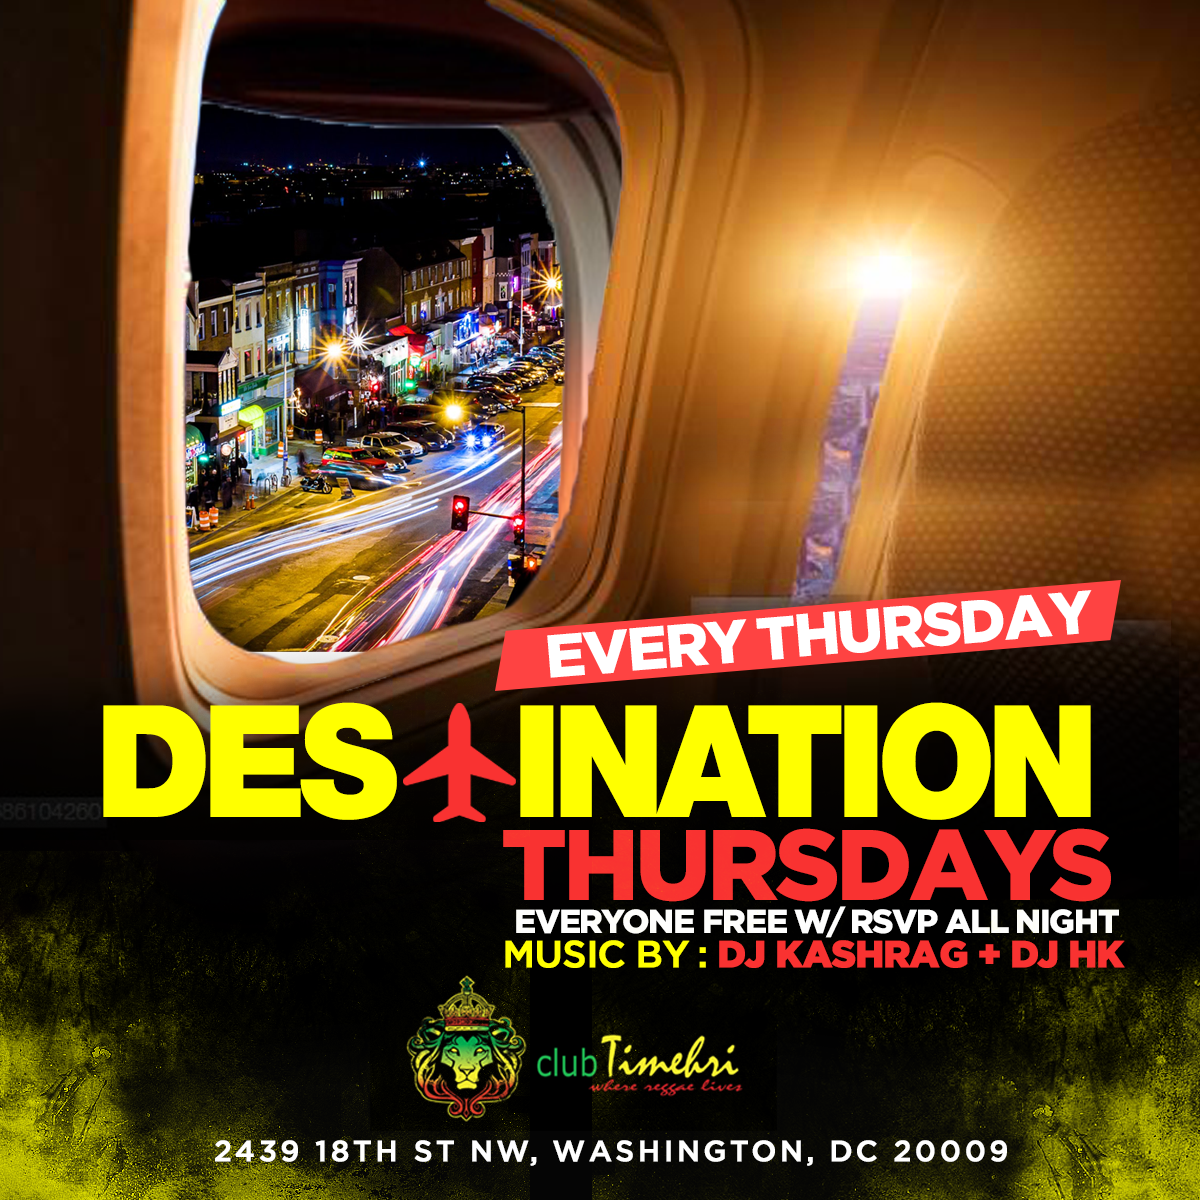 #DestinationTHURSDAYS - International Sounds | reggae, afrobeats, soca, dancehall